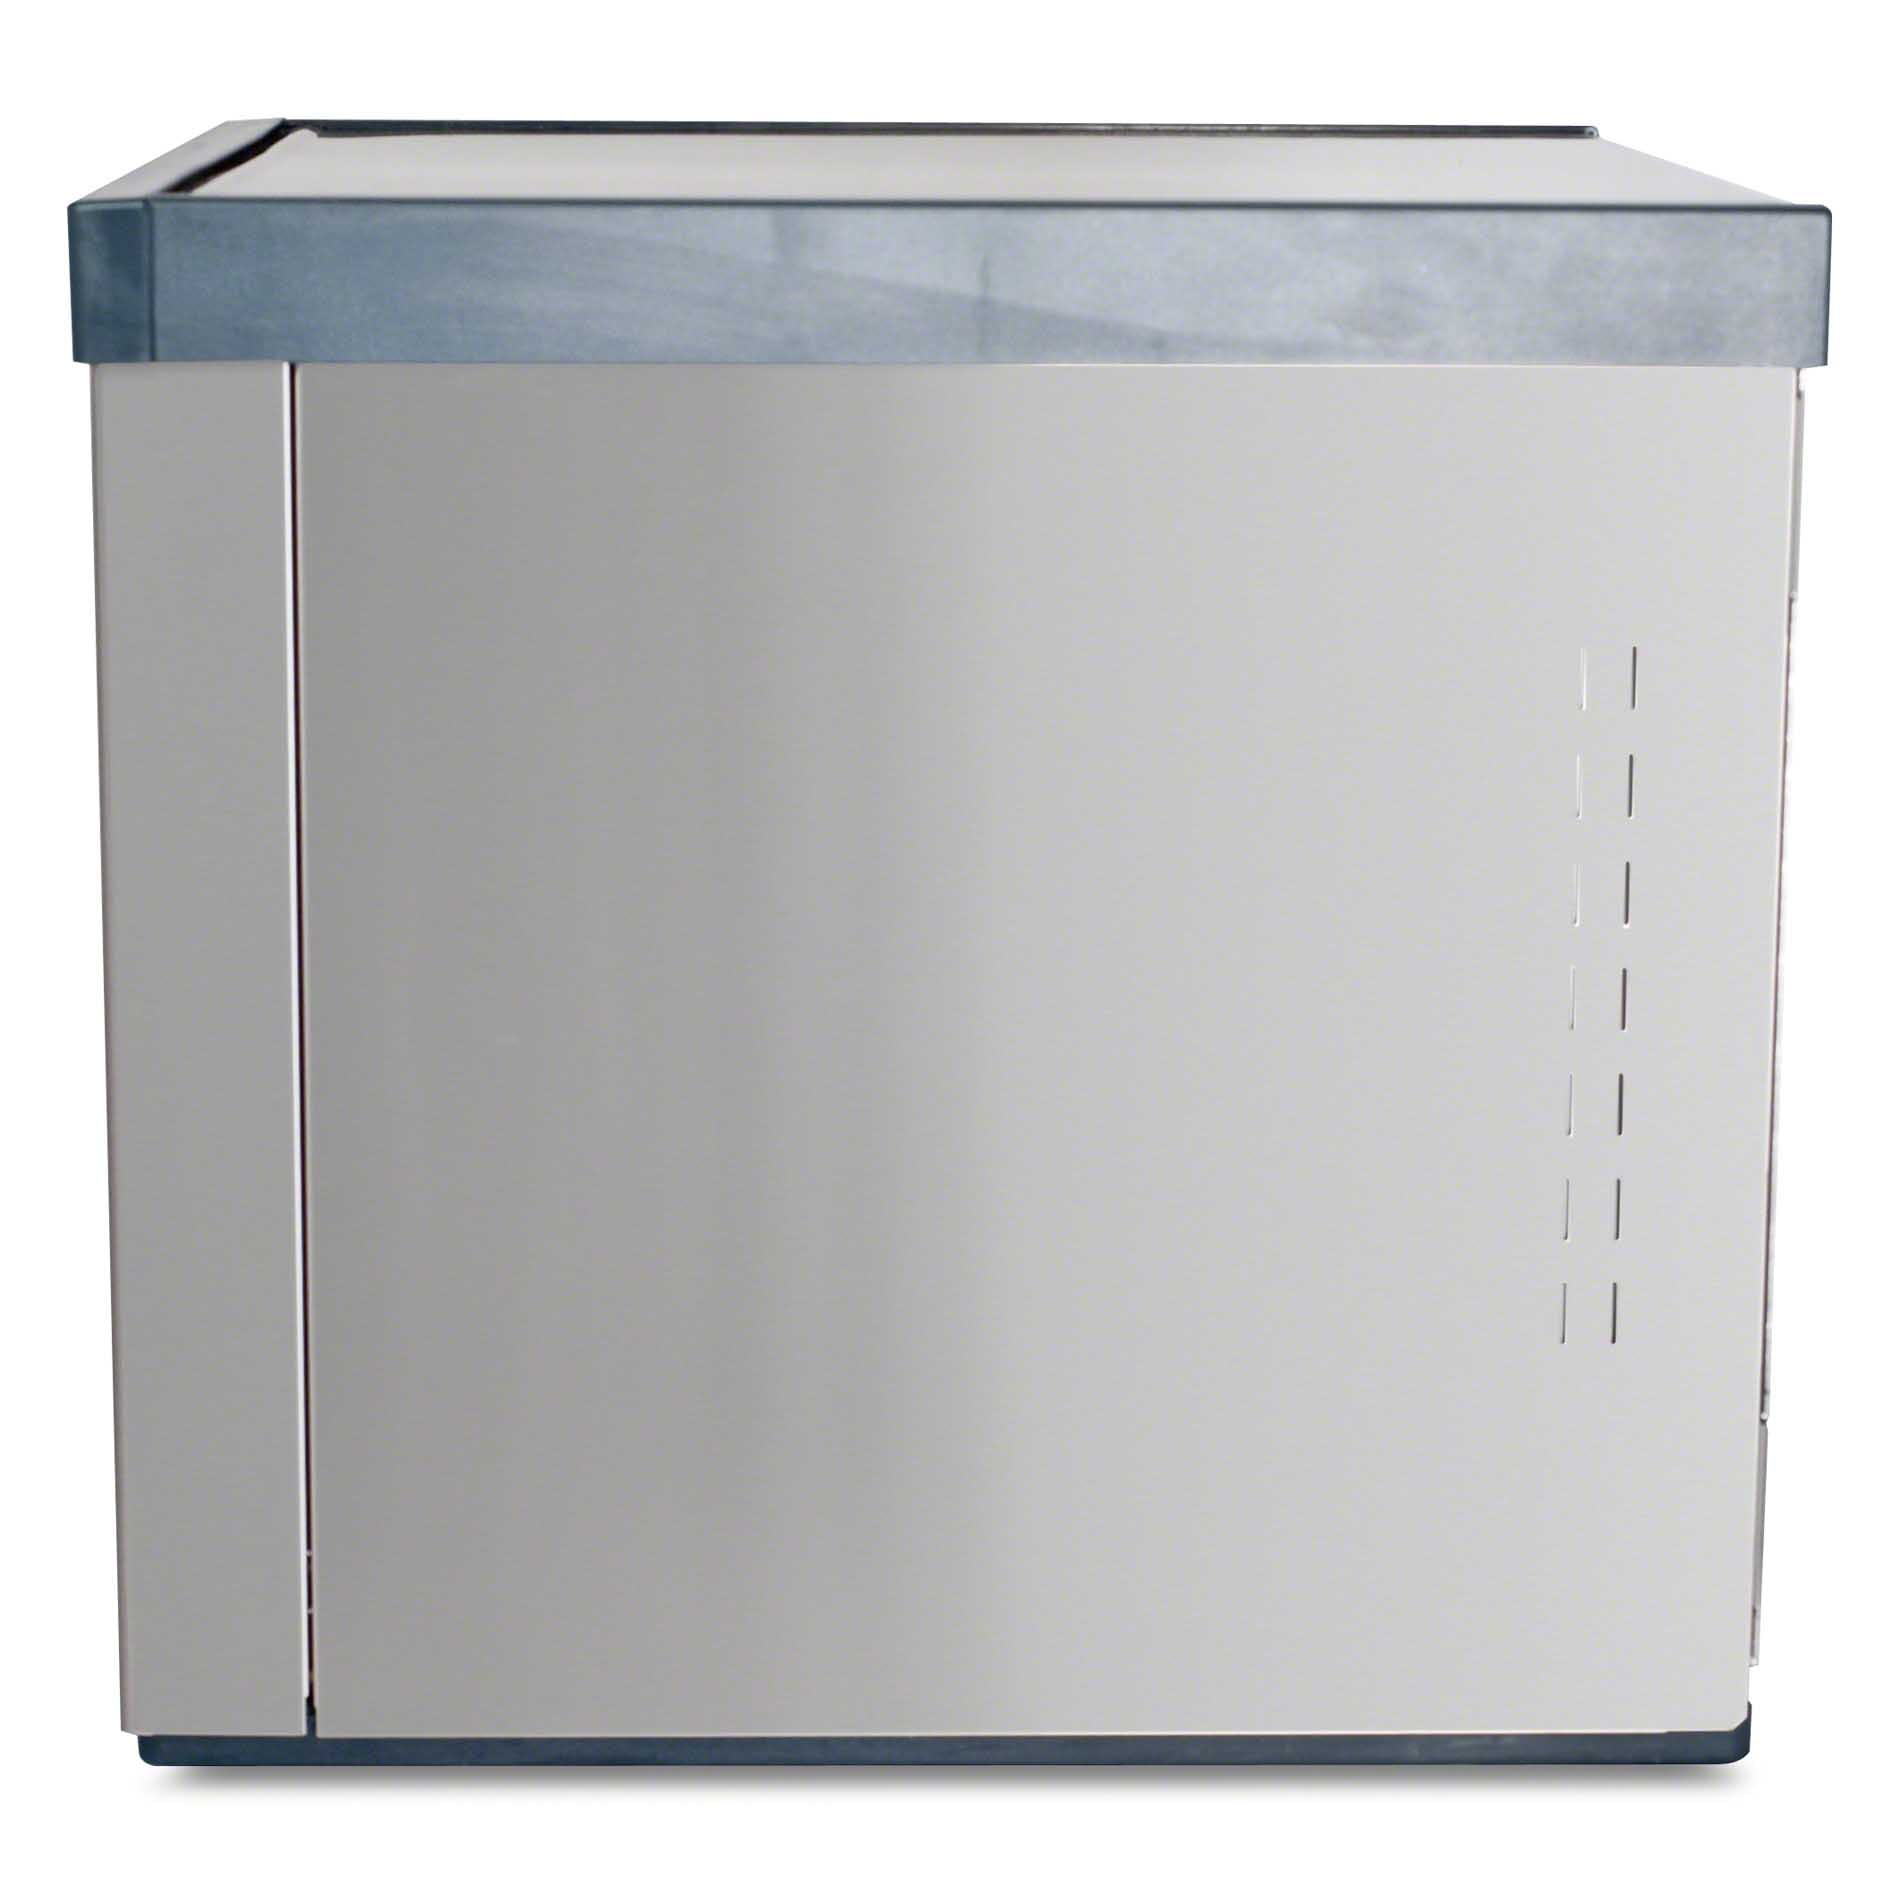 Scotsman - C0322SW-1A 366 lb Half Size Cube Ice Machine - Prodigy Series Ice machine sold by Food Service Warehouse